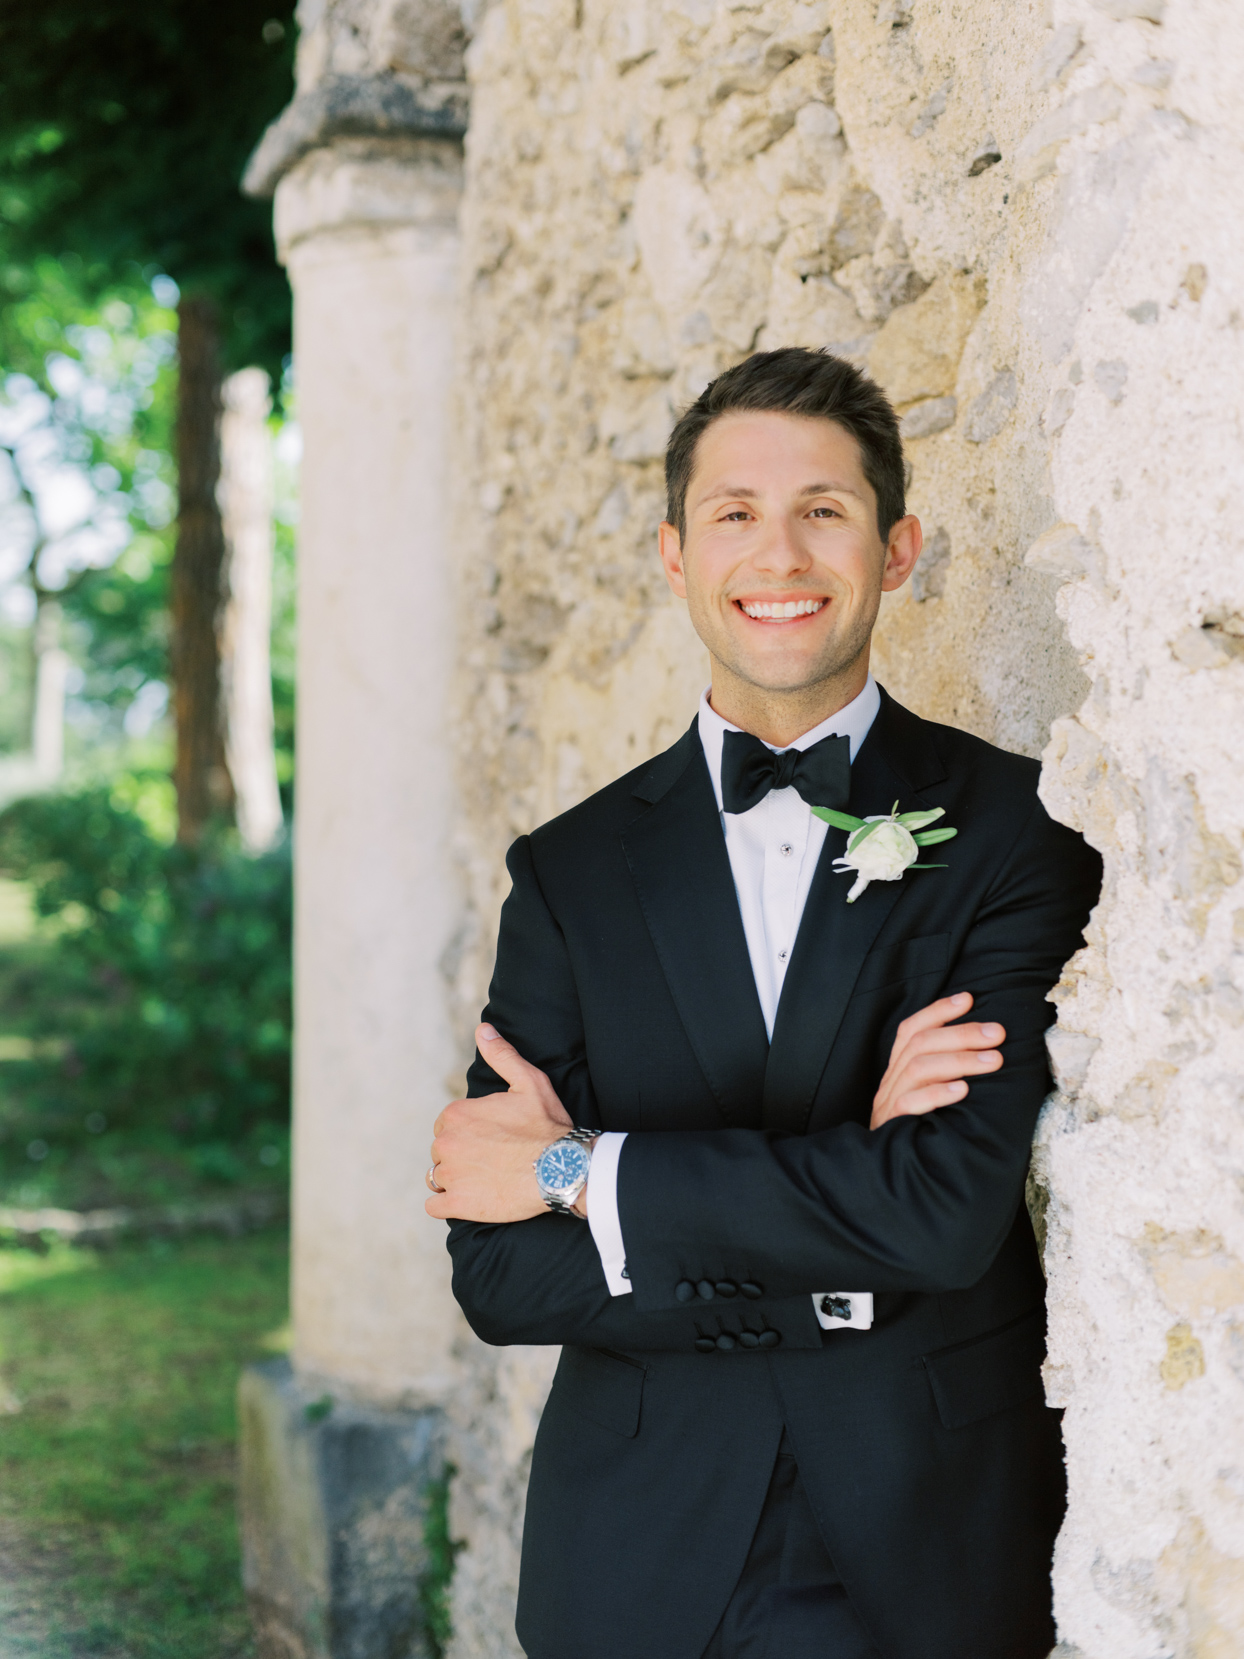 groom in black tux and bowtie